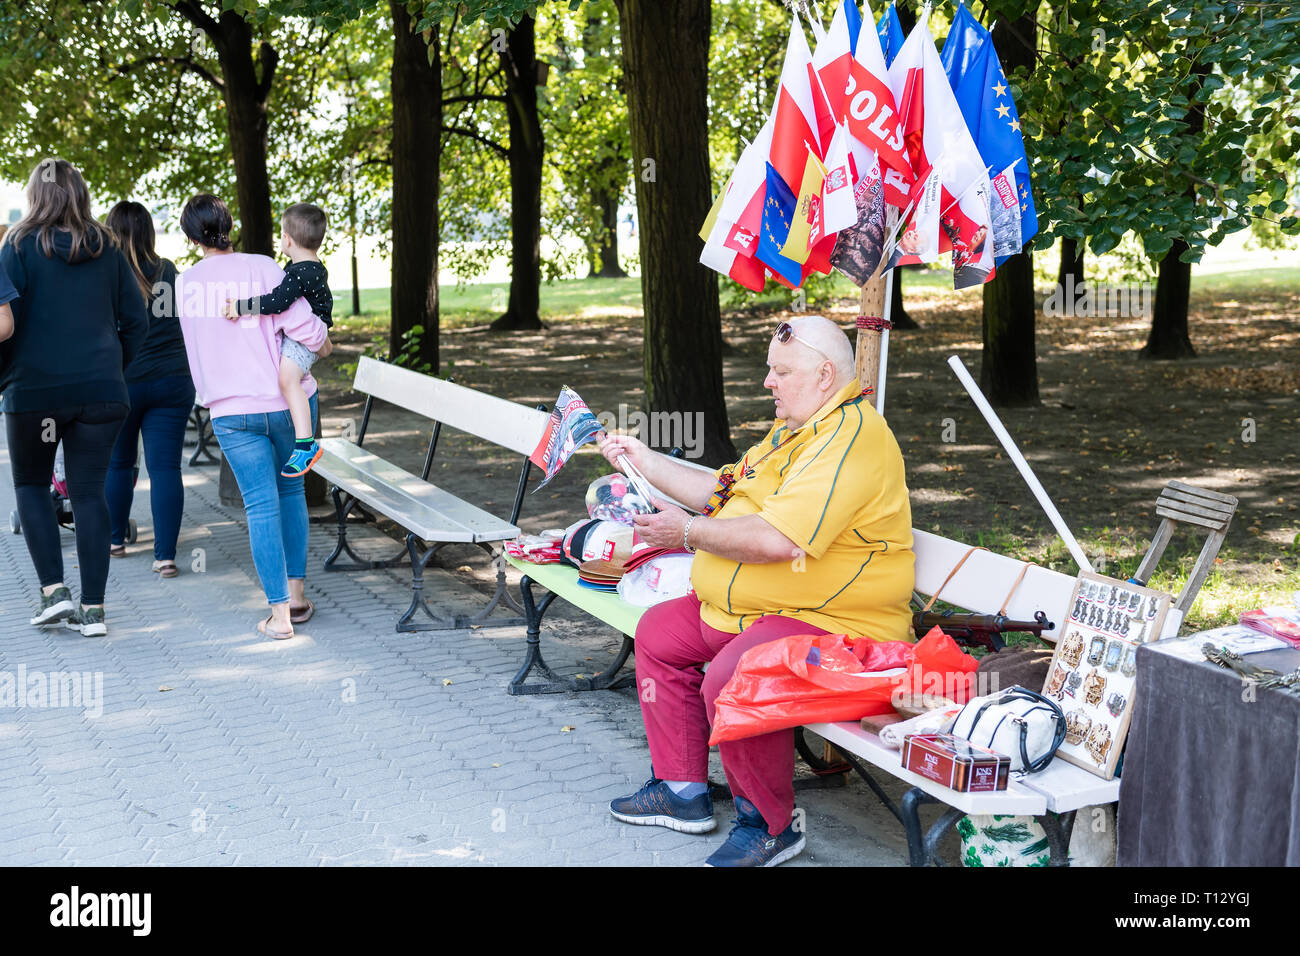 Warsaw, Poland - August 23, 2018: People woman vendor selling souvenirs Polish European Union flags on bench in summer Saxon Gardens Park - Stock Image